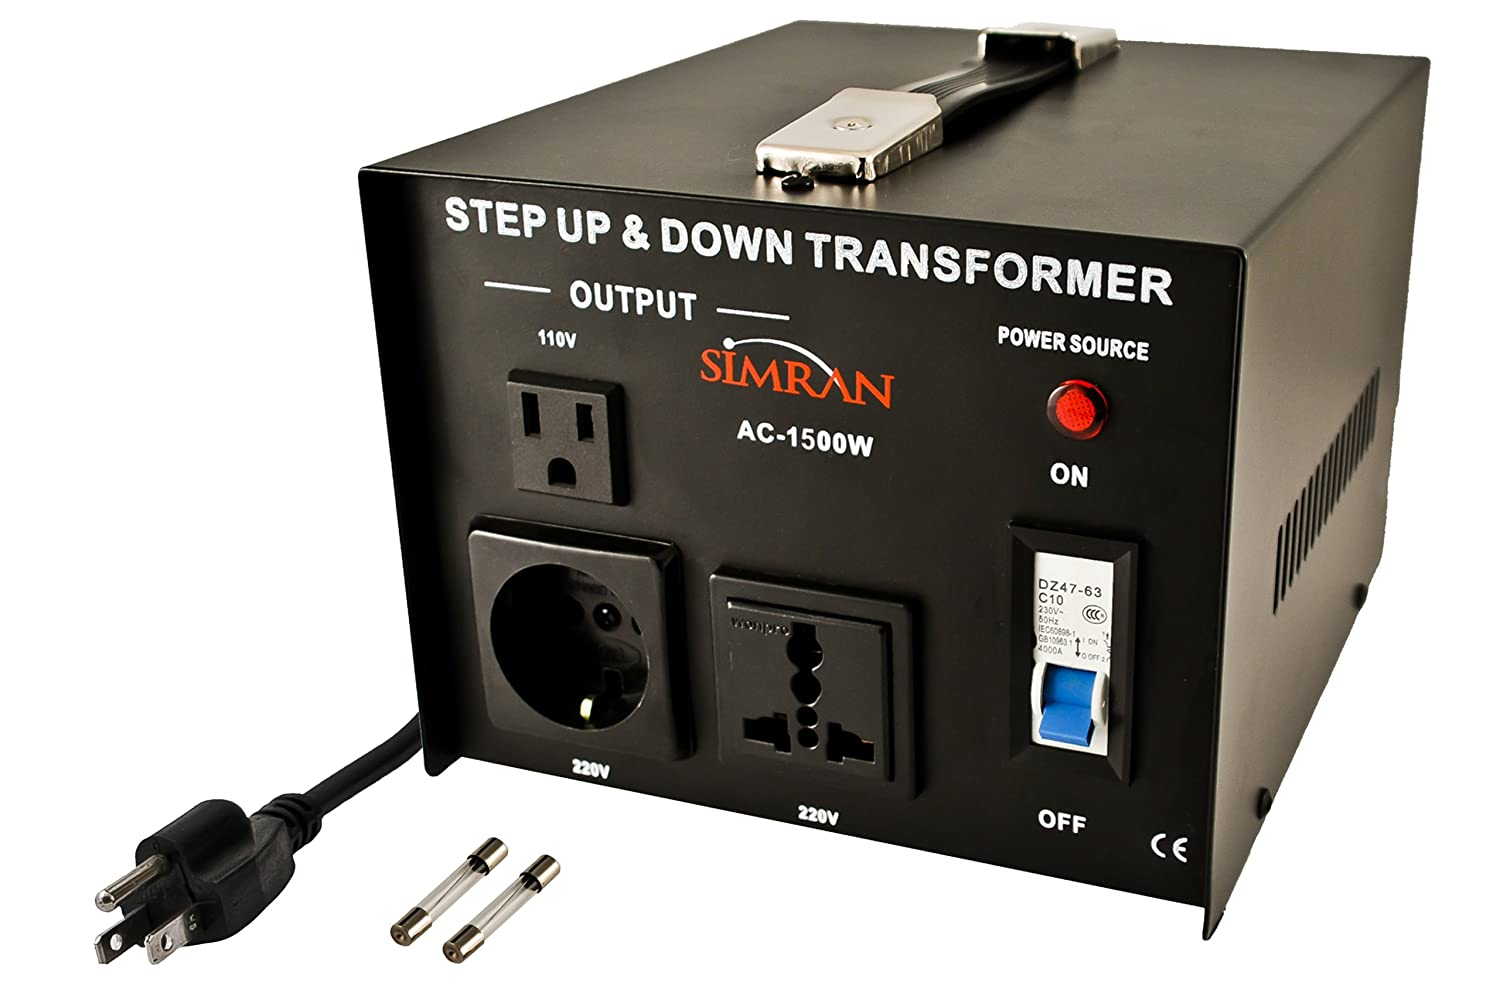 81xKWlZYO5L._SL1500_ simran ac 300 step up down voltage converter transformer 110v 220v  at nearapp.co